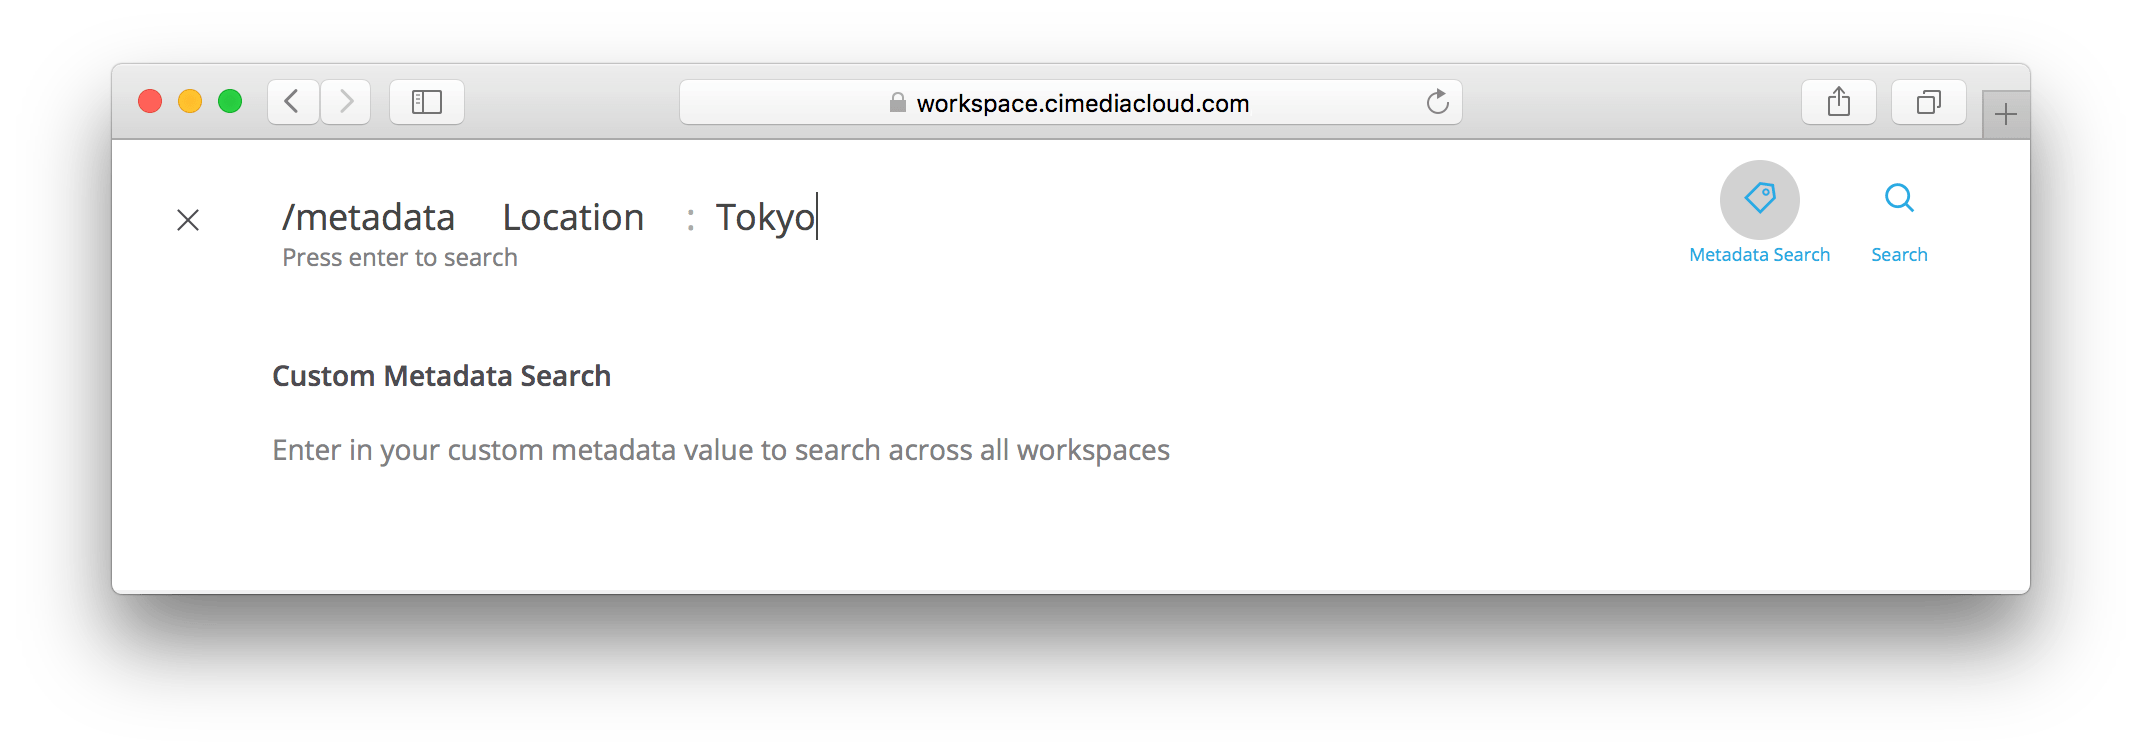 User Guide: Metadata based Search